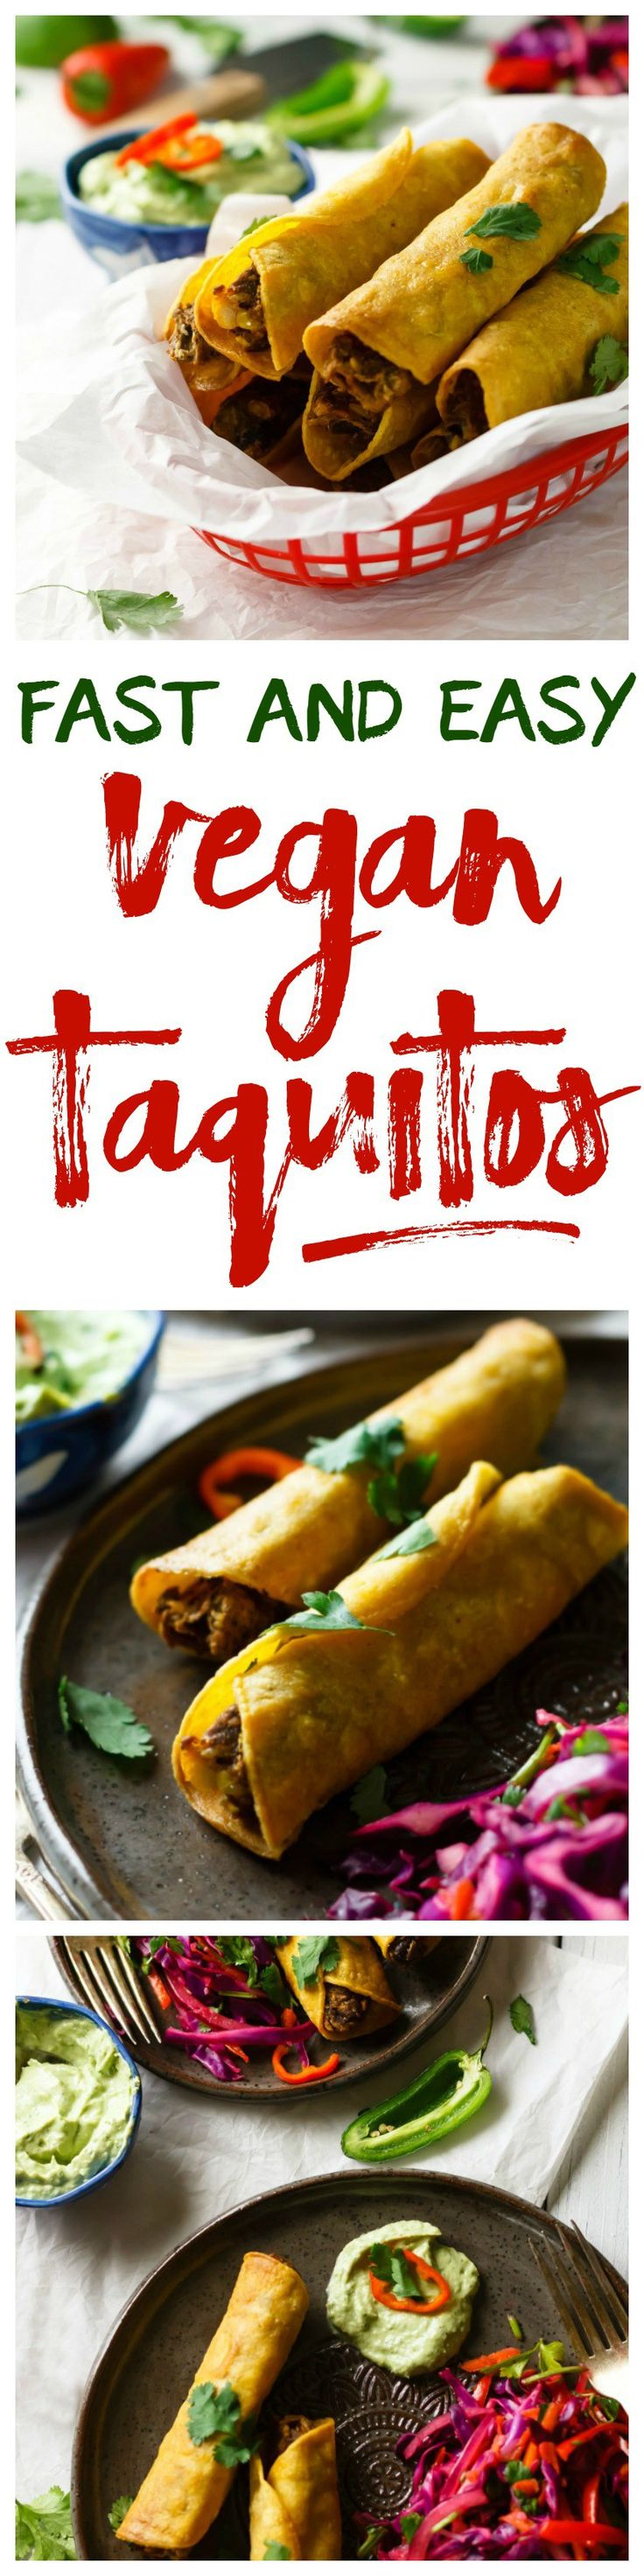 Easy Vegan Taquitos with Avocado Mayo and Mexican Slaw ***GET A $1 OFF COUPON FOR GARDEIN VEGAN GOODIES!!!***